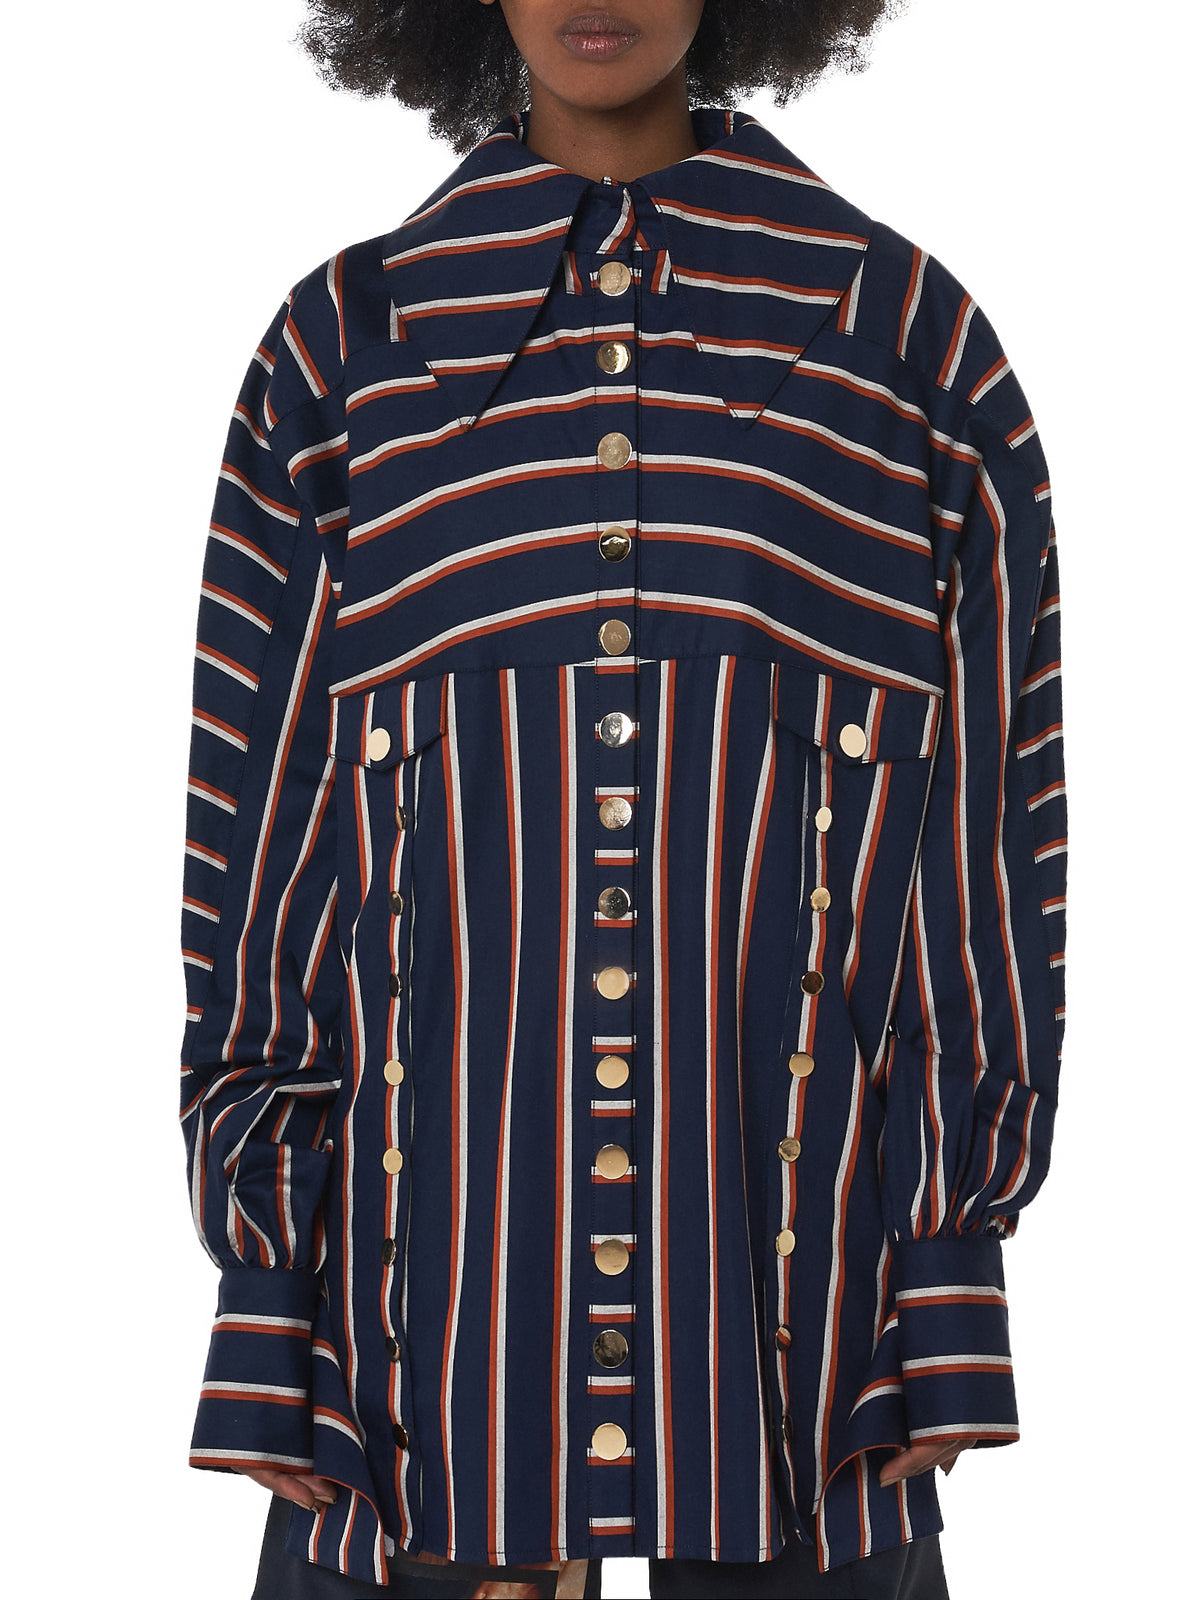 Oversized Striped Shirt (OVERSIZED-STRIPE-SHIRT-BLU-RED)